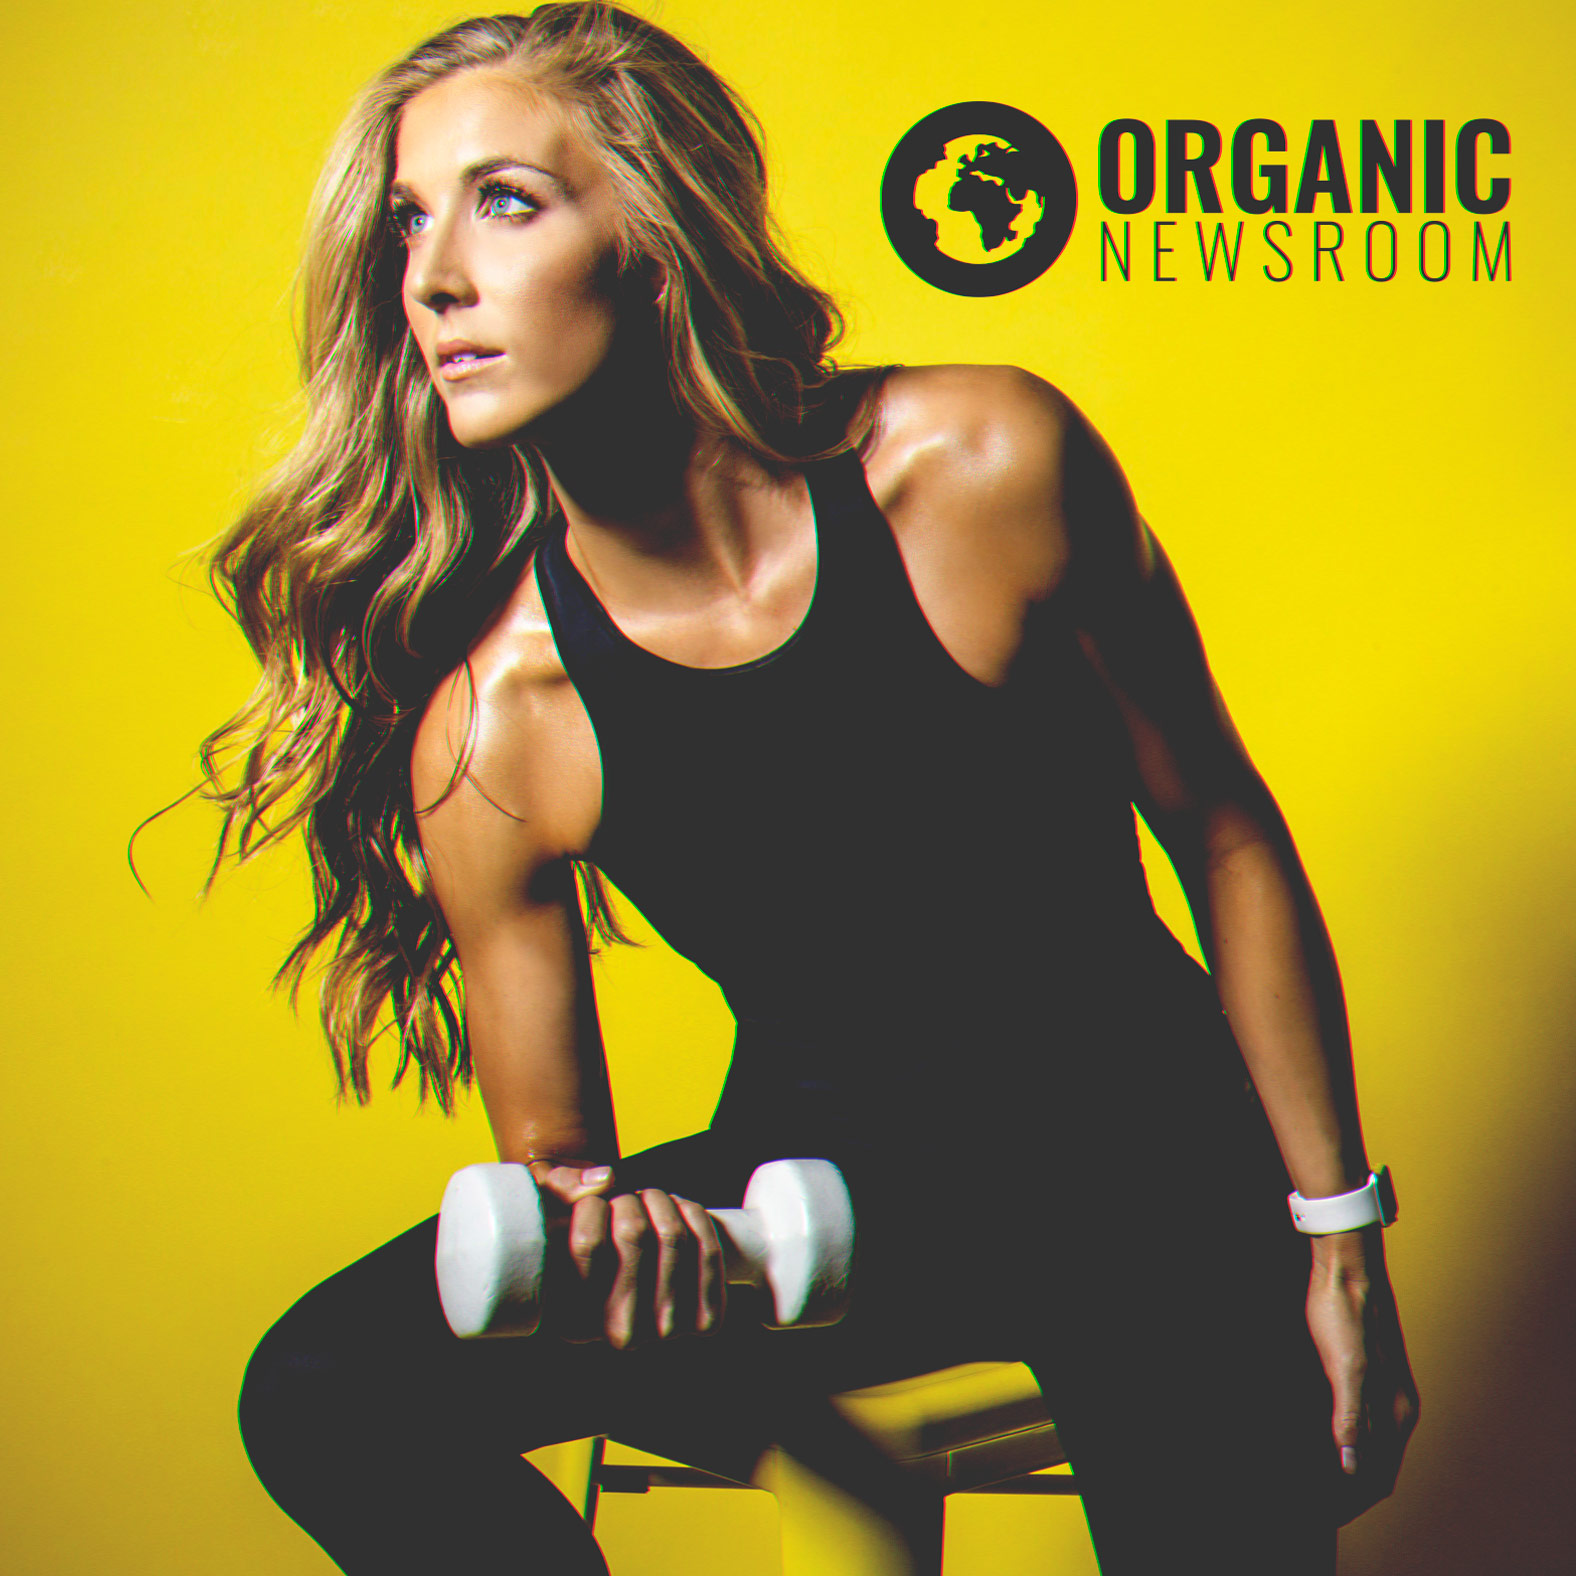 fitness-workouts-beginners-organic-newsroom